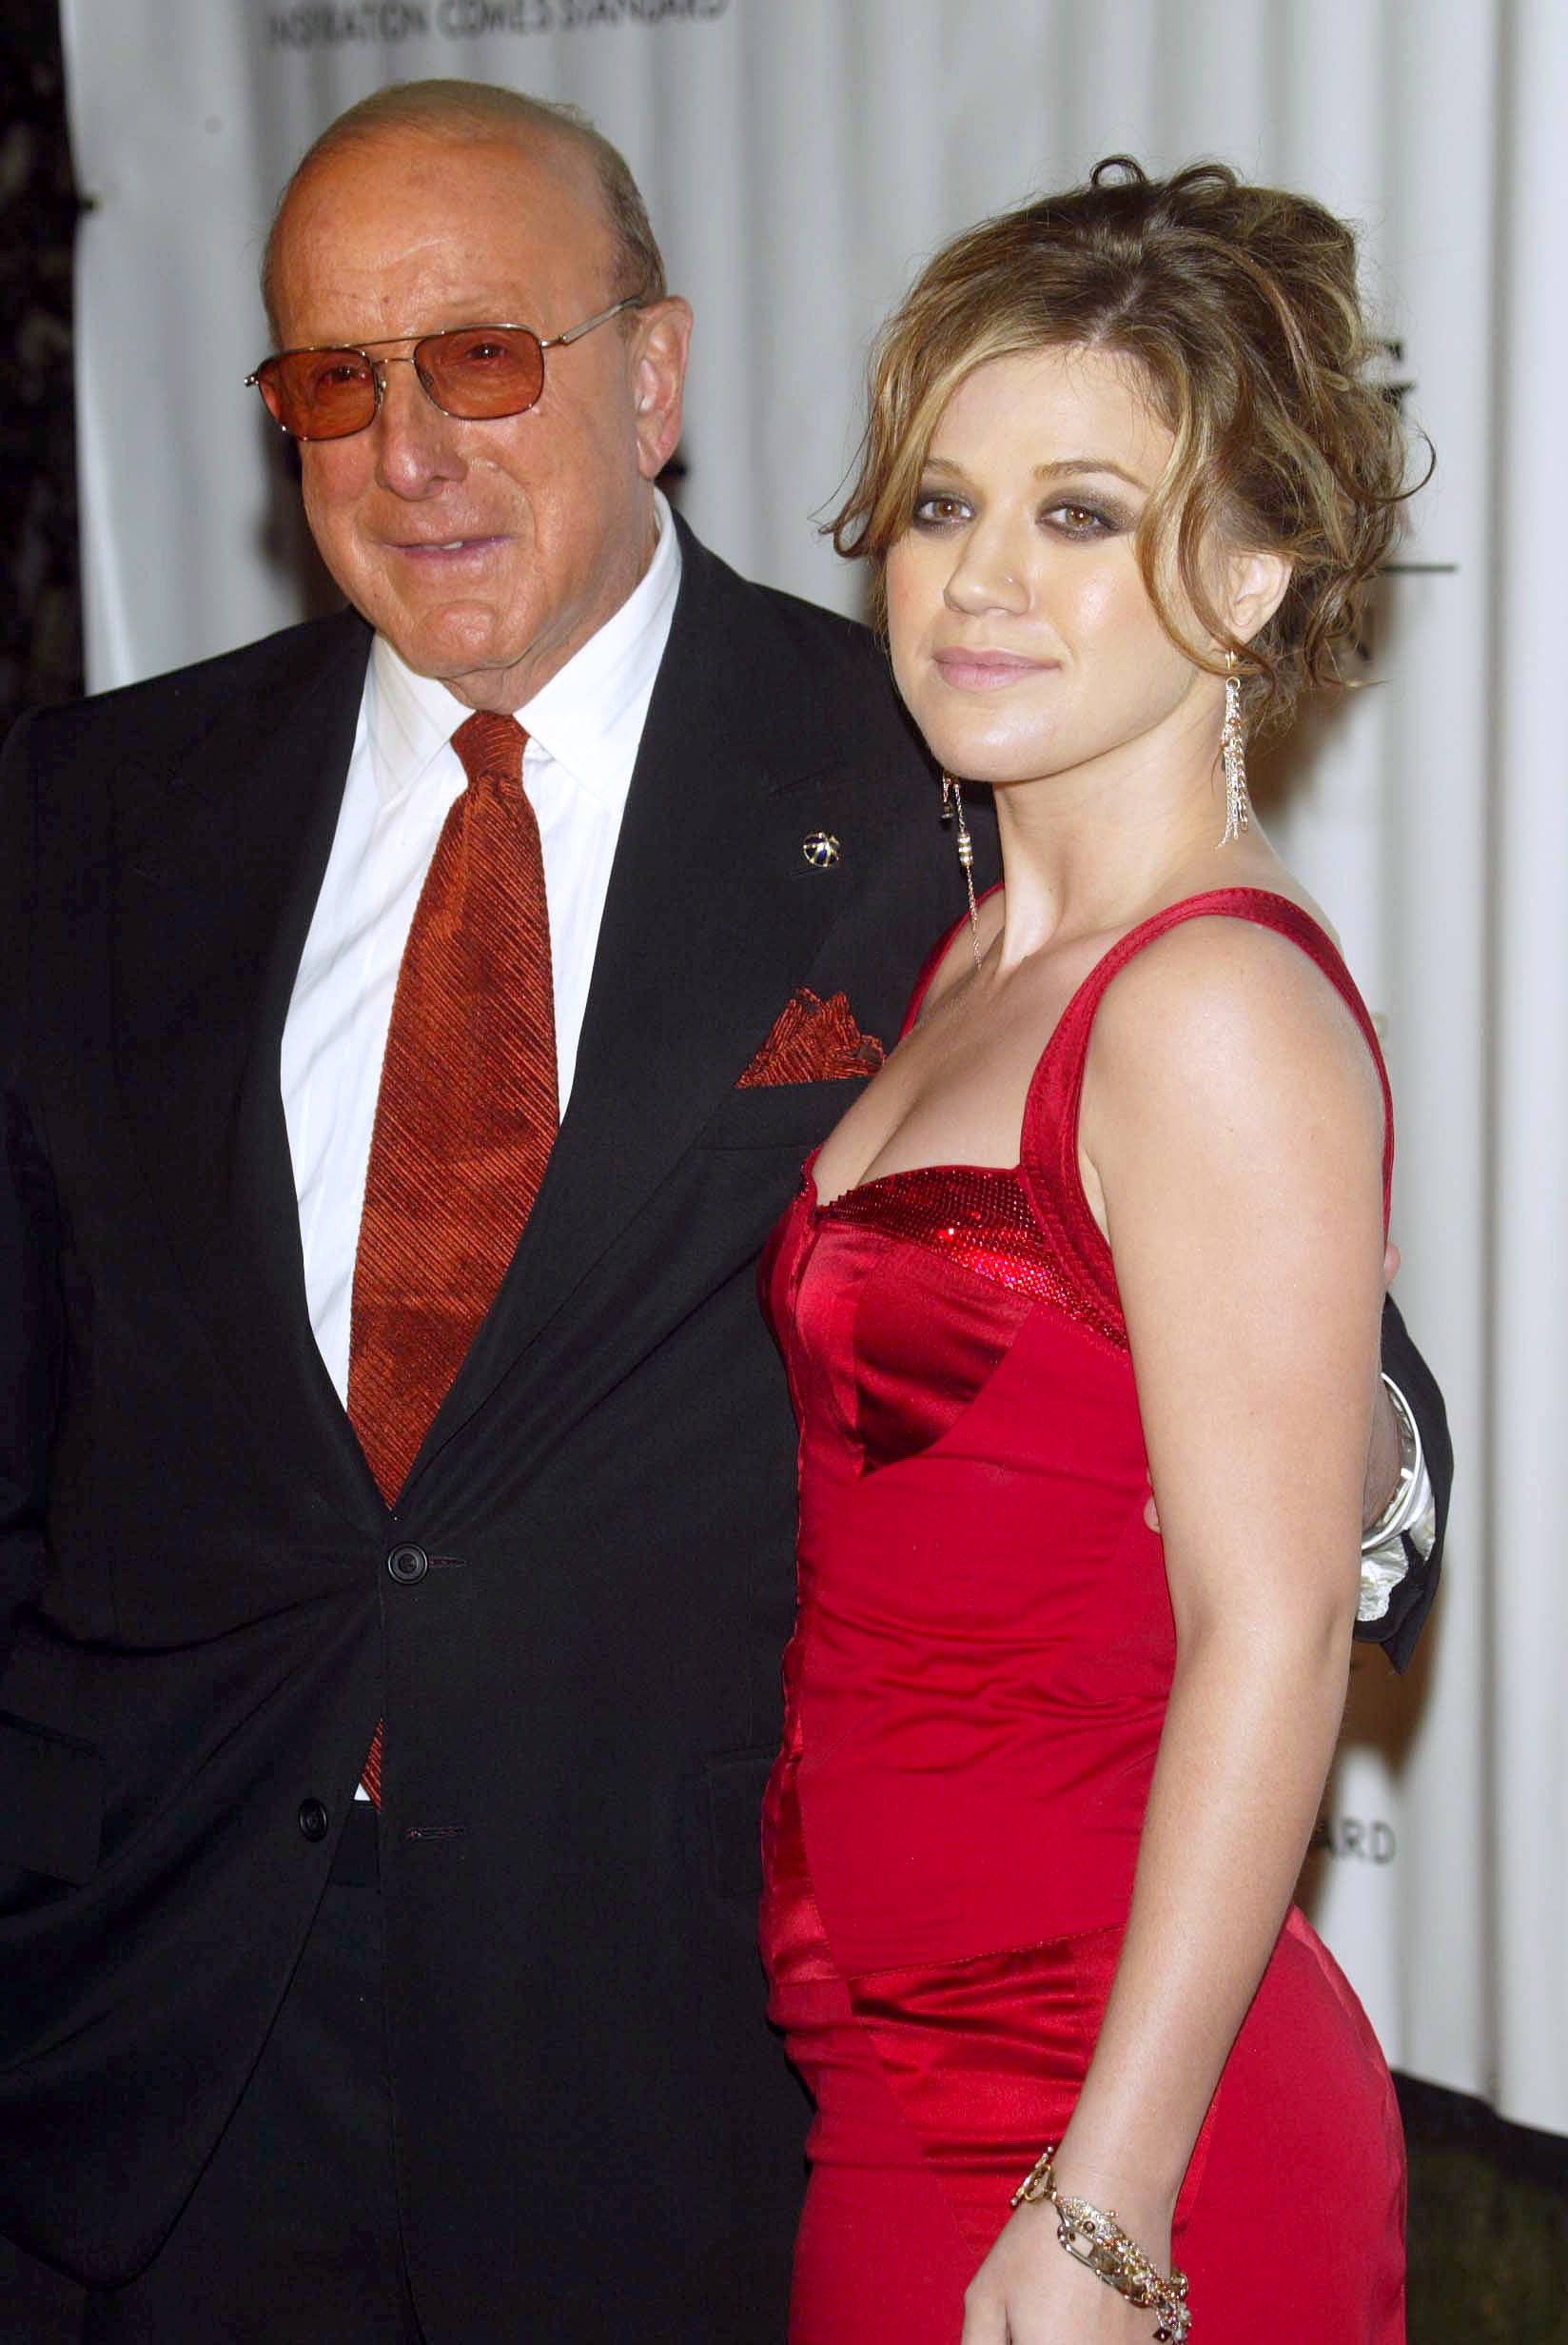 Kelly Clarkson Clive Davis red carpet Grammy party mentor